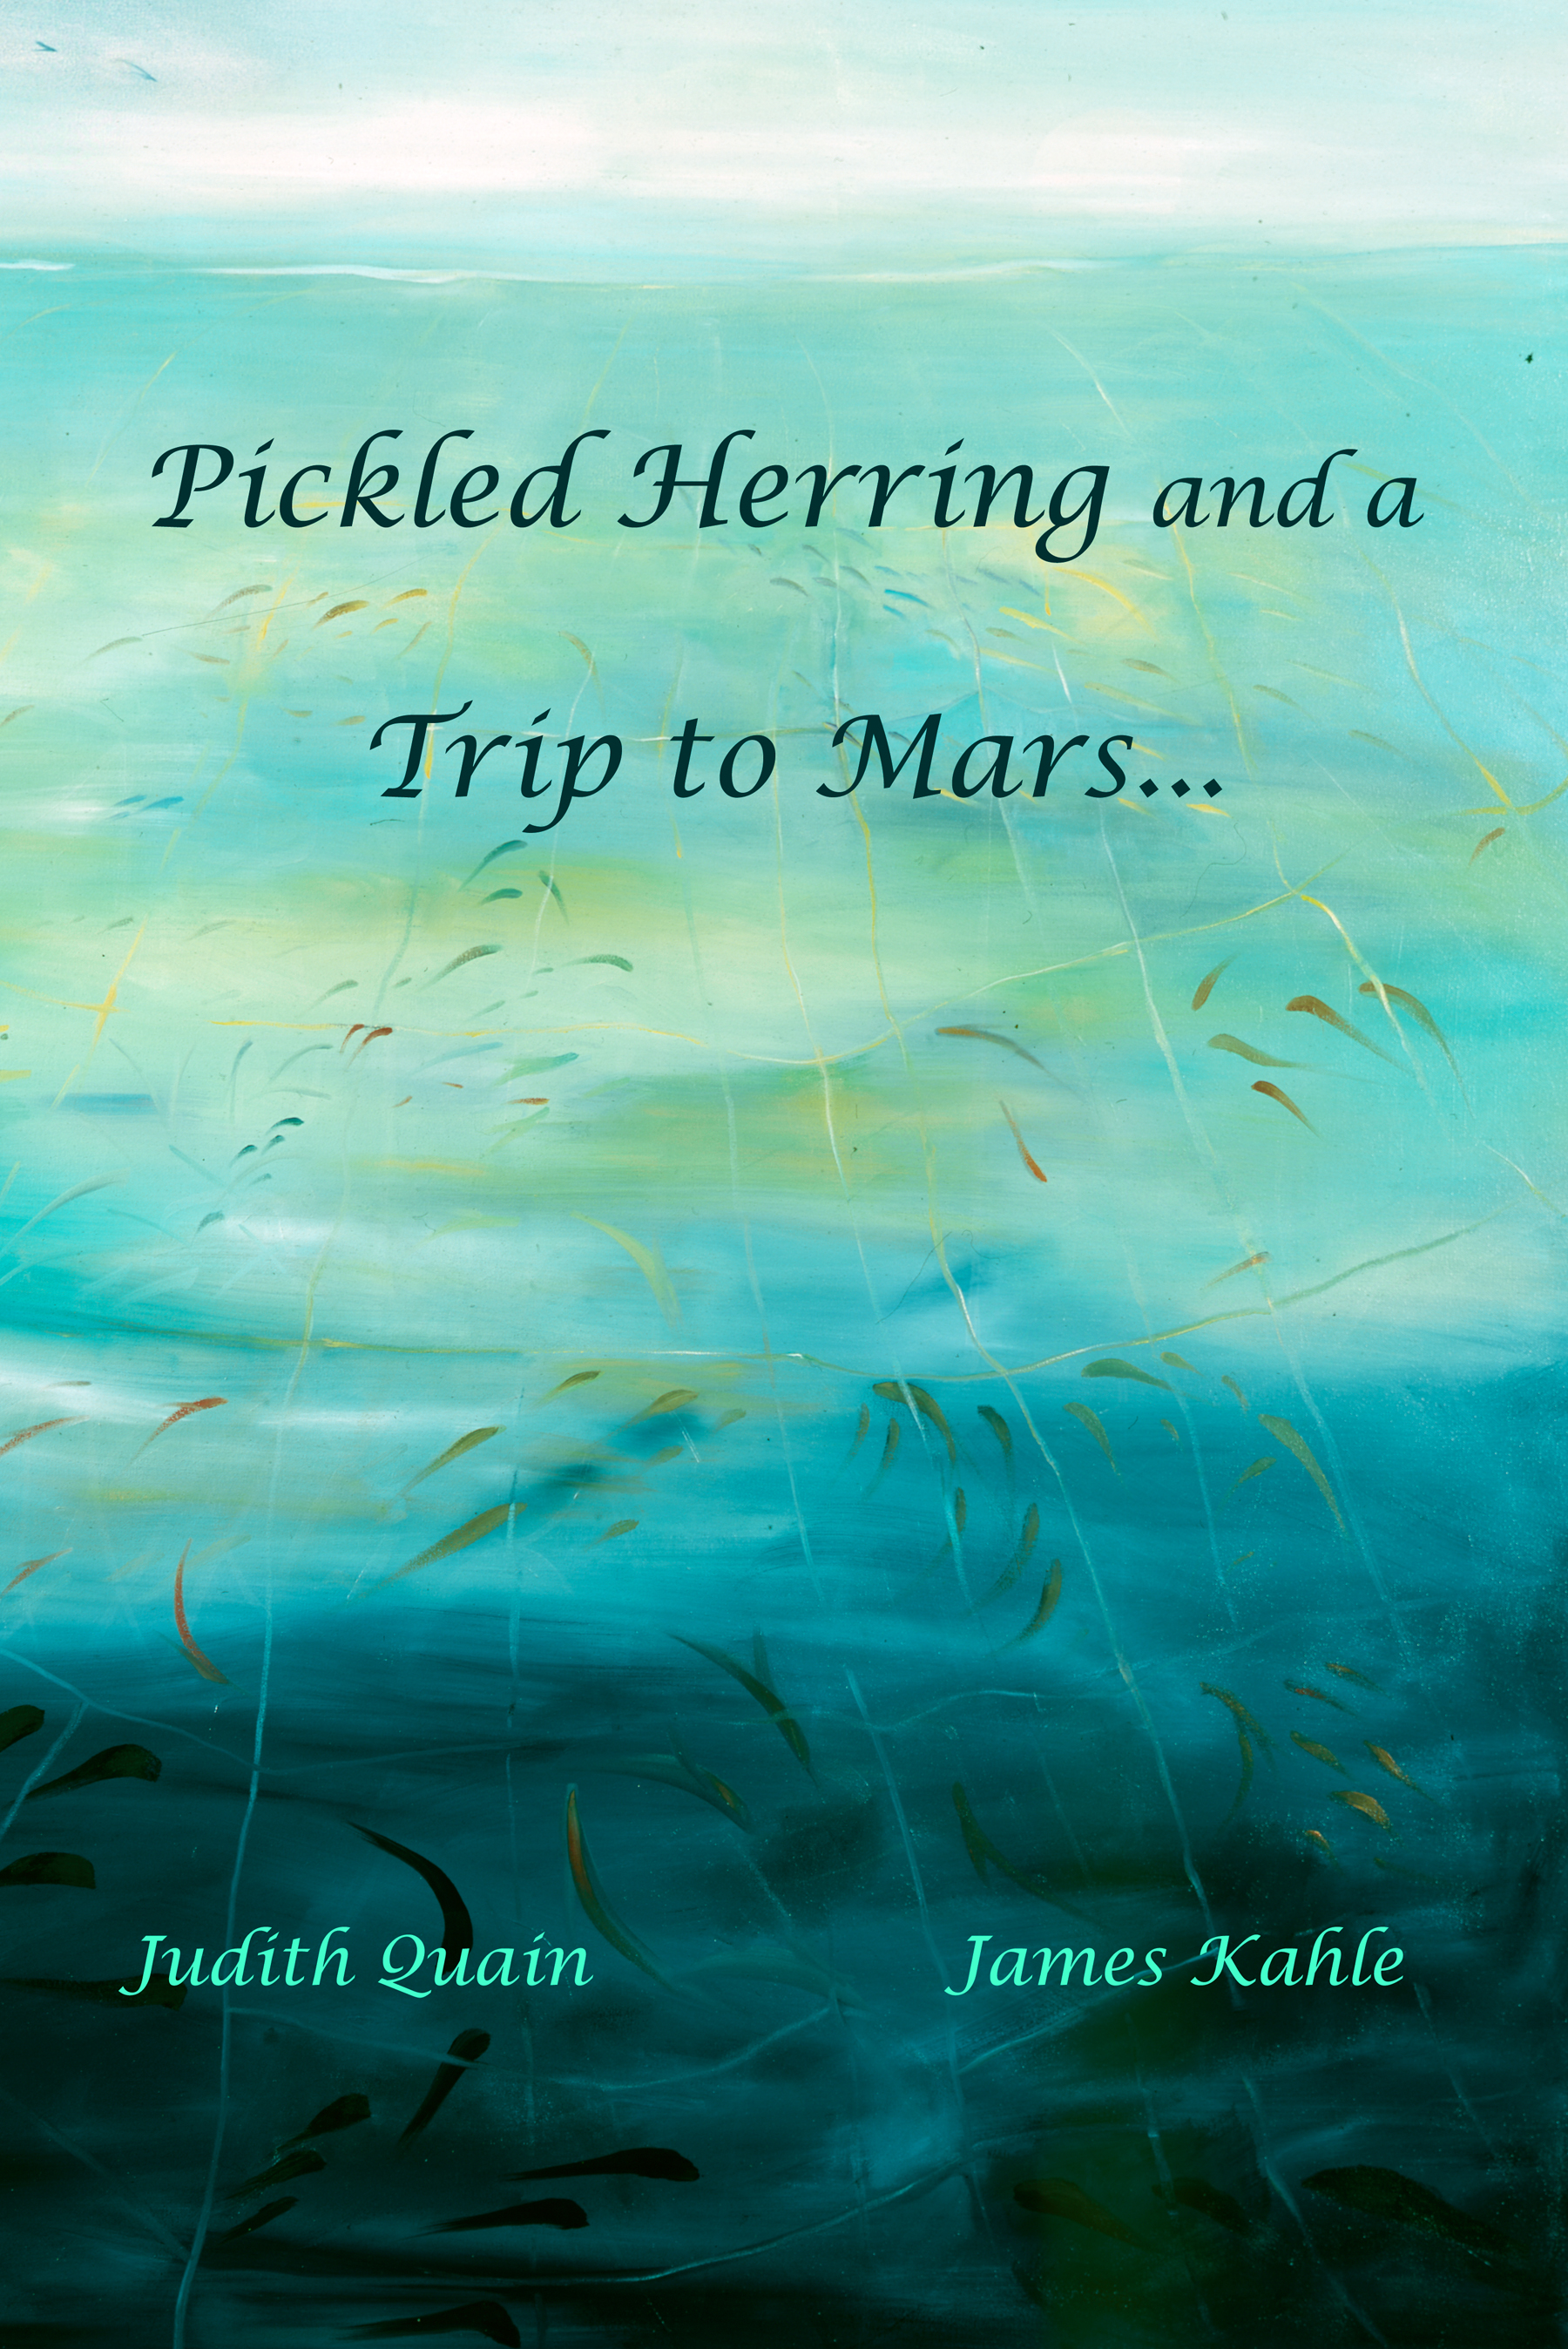 Pickled Herring and a Trip to Mars